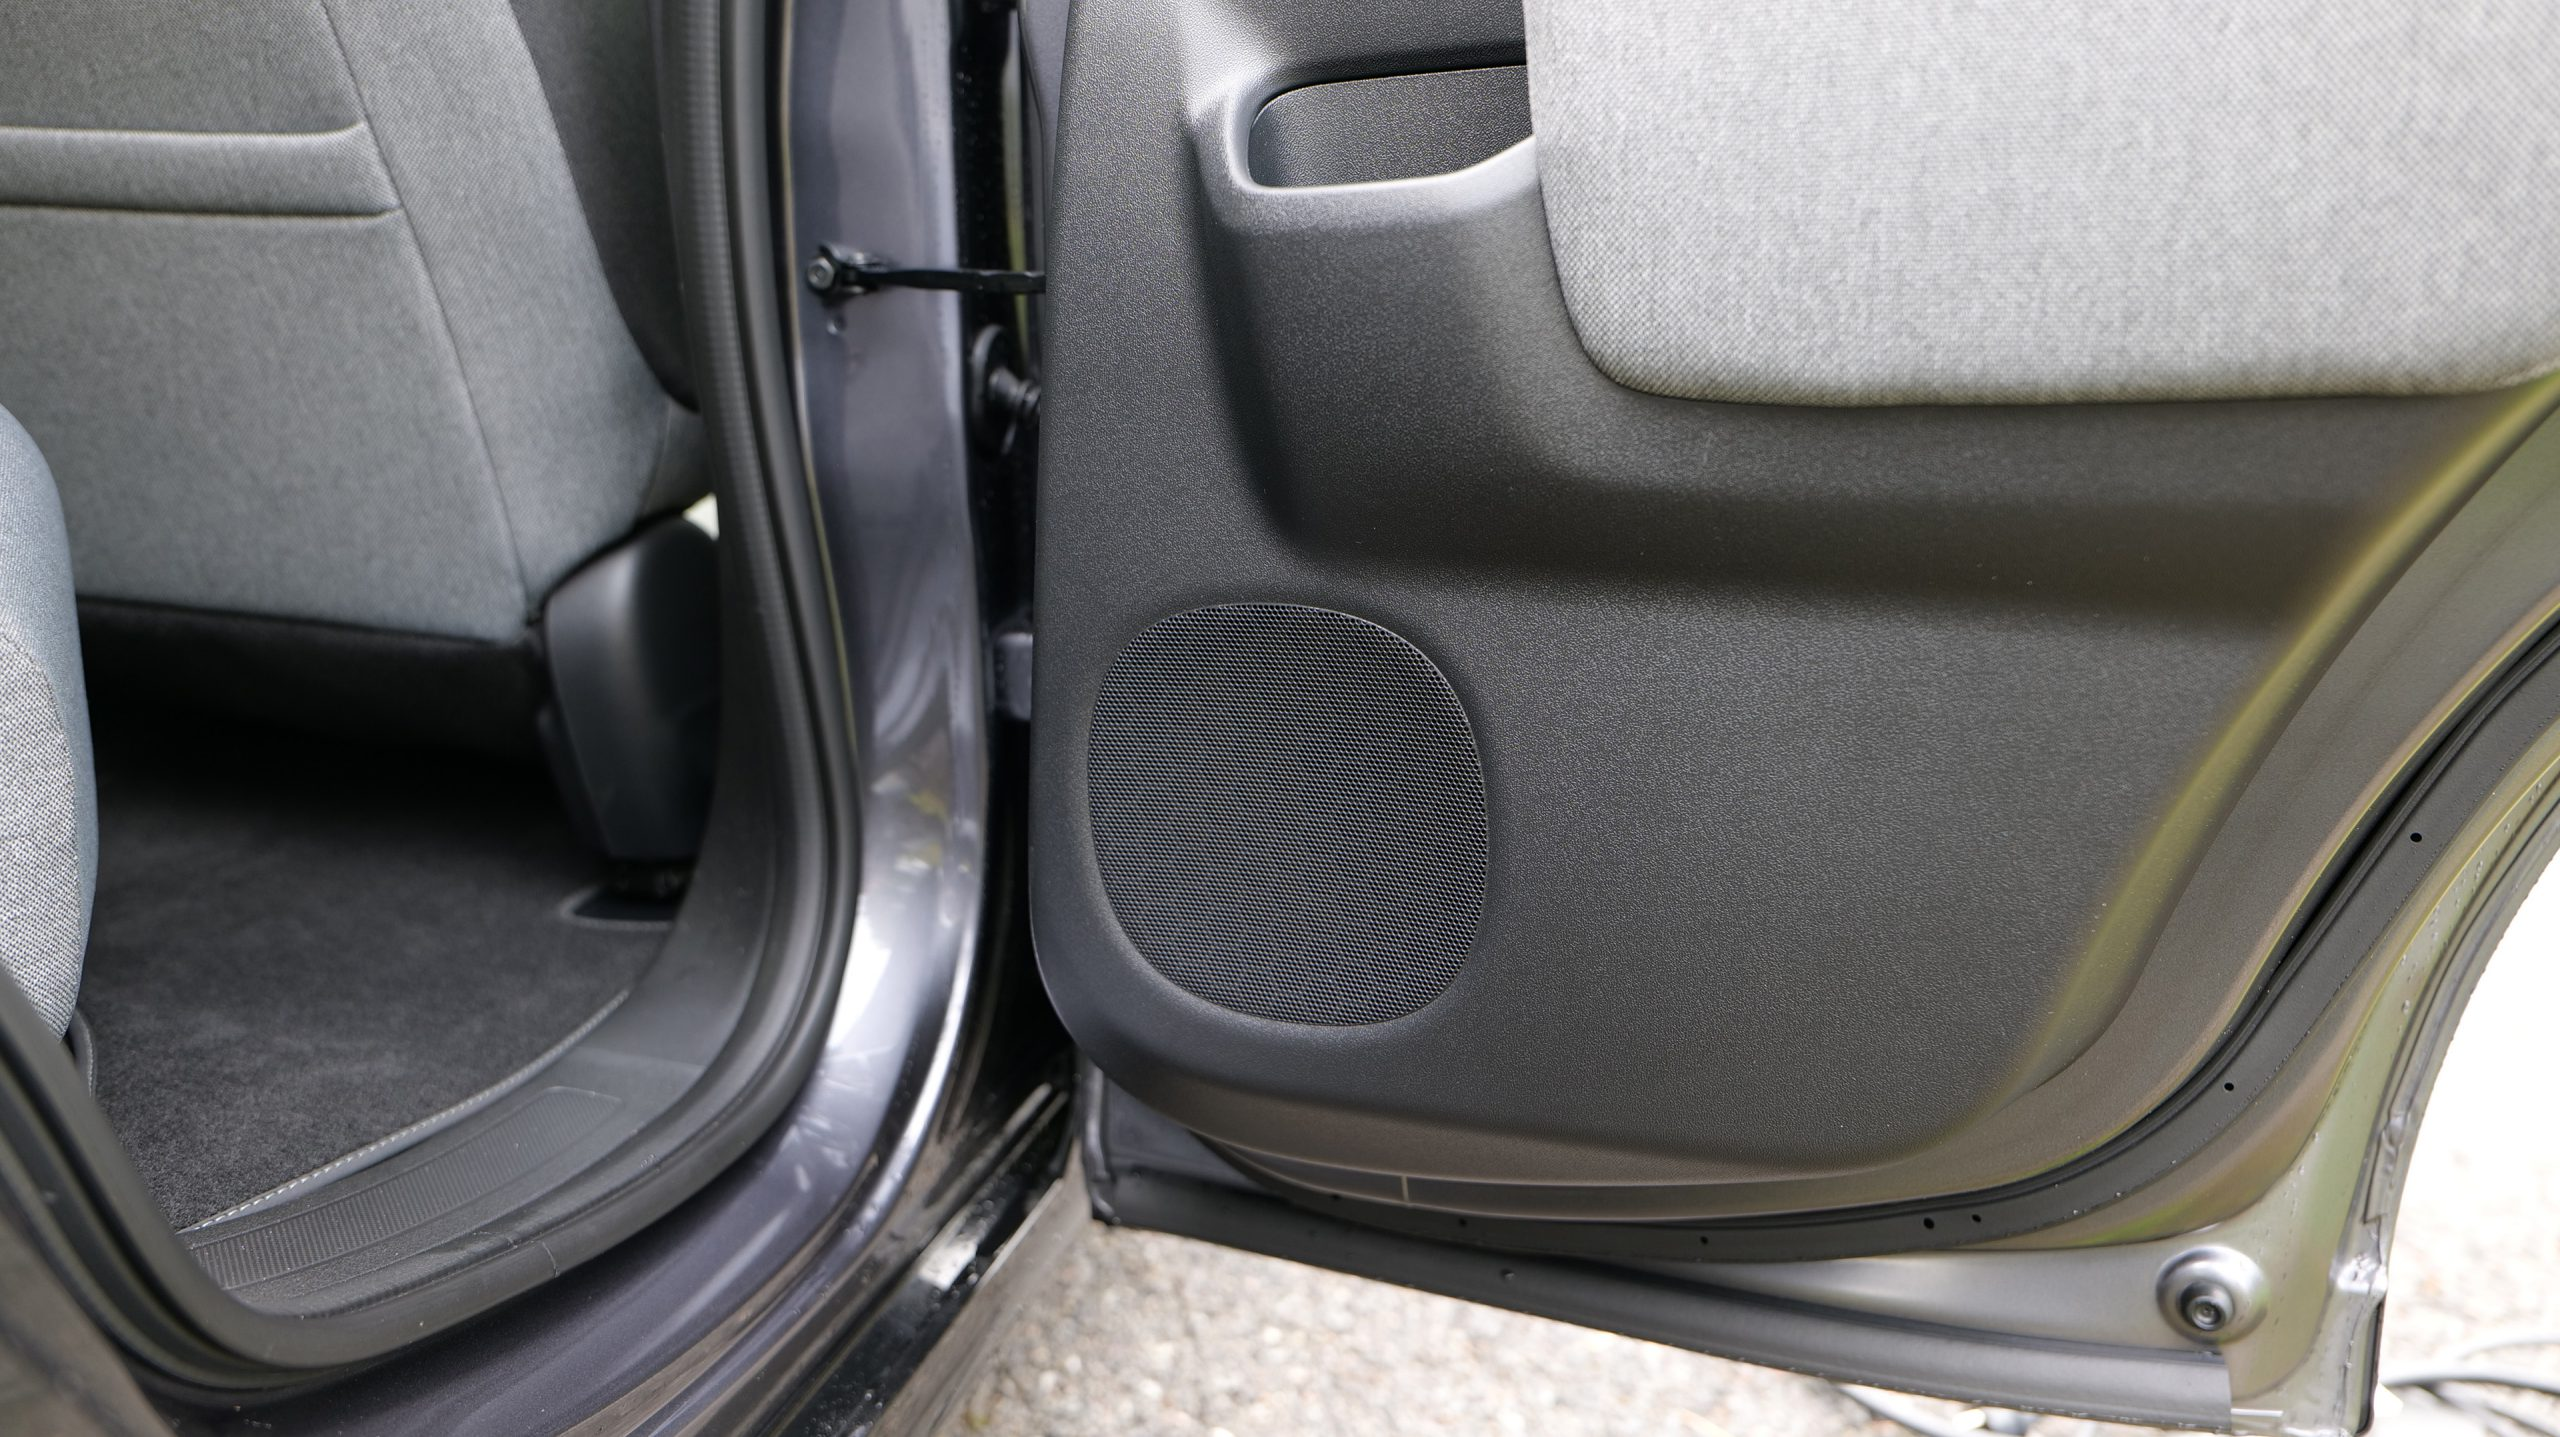 Honda e backdoor speaker